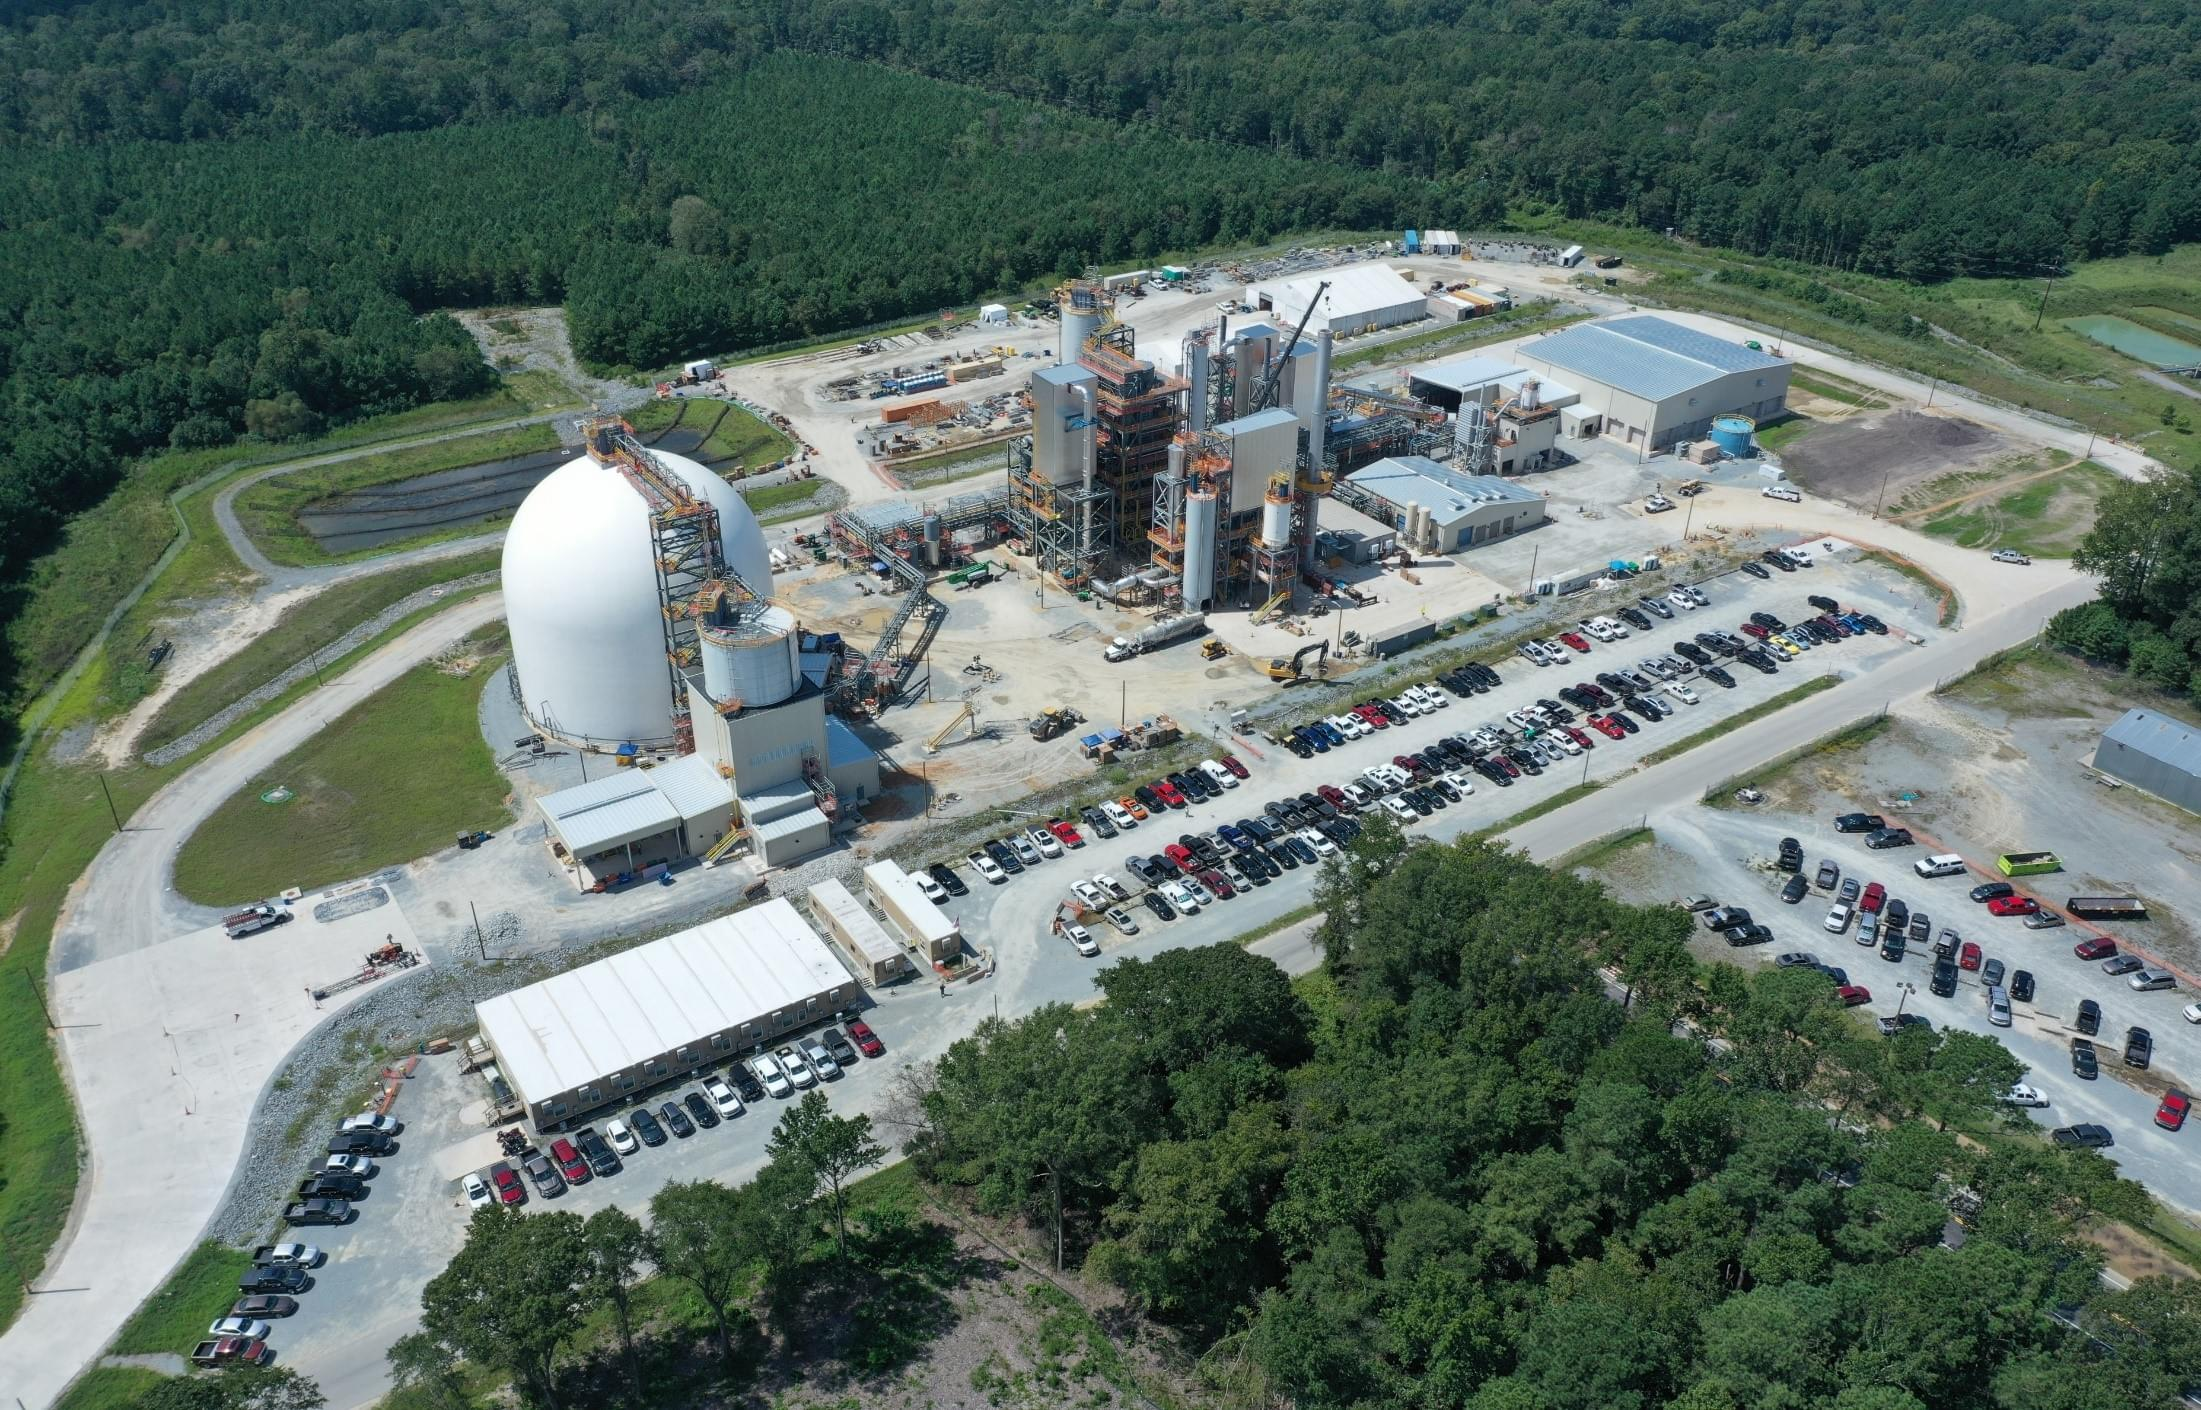 DUKE ENERGY: 150 Tons Of Processed Coal Ash Spilled, Cleaned Up At H.F. Lee